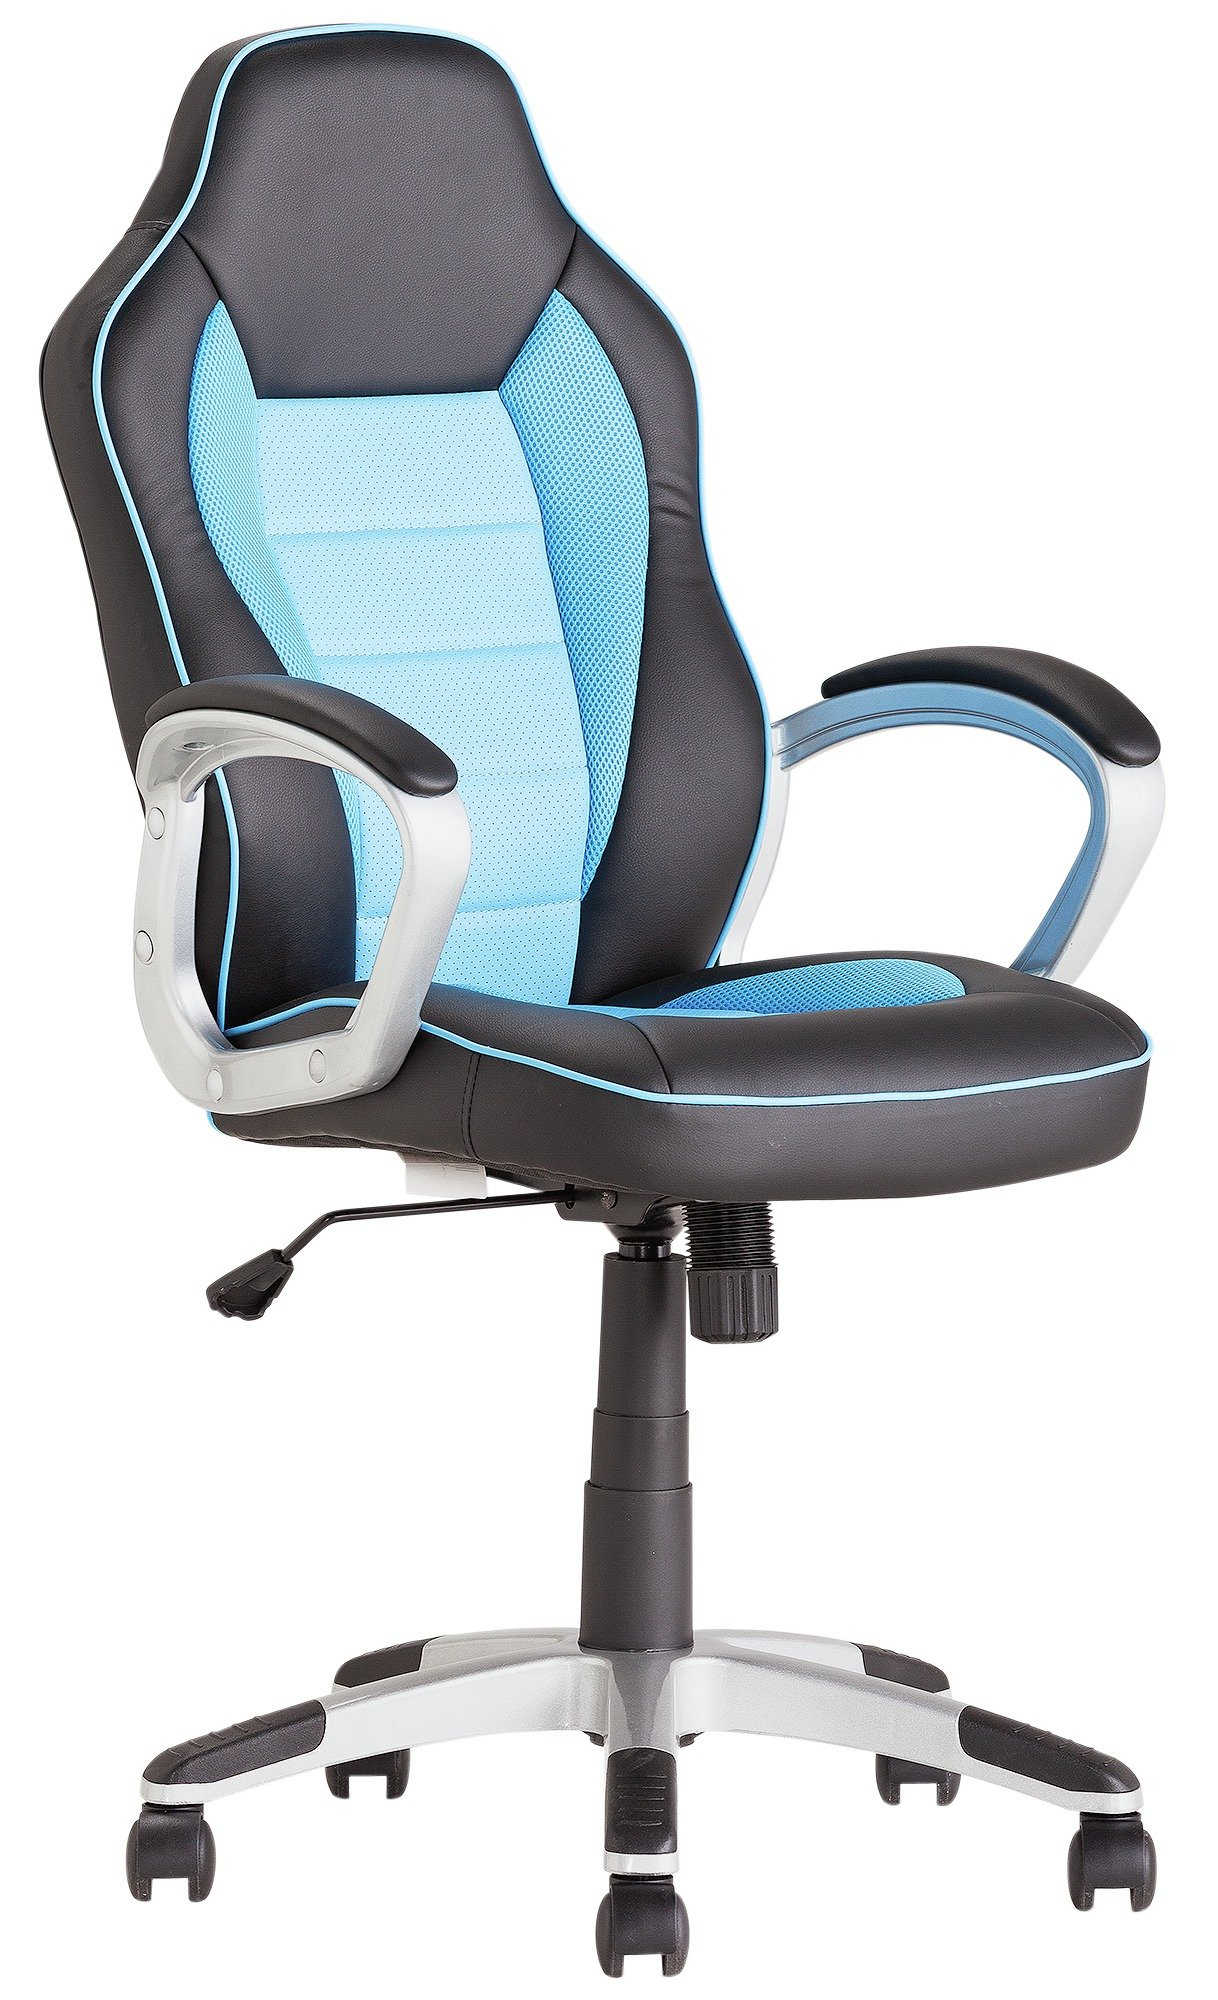 chair gym argos evenflo high chairs offer offers trending latest deals from uk retailers